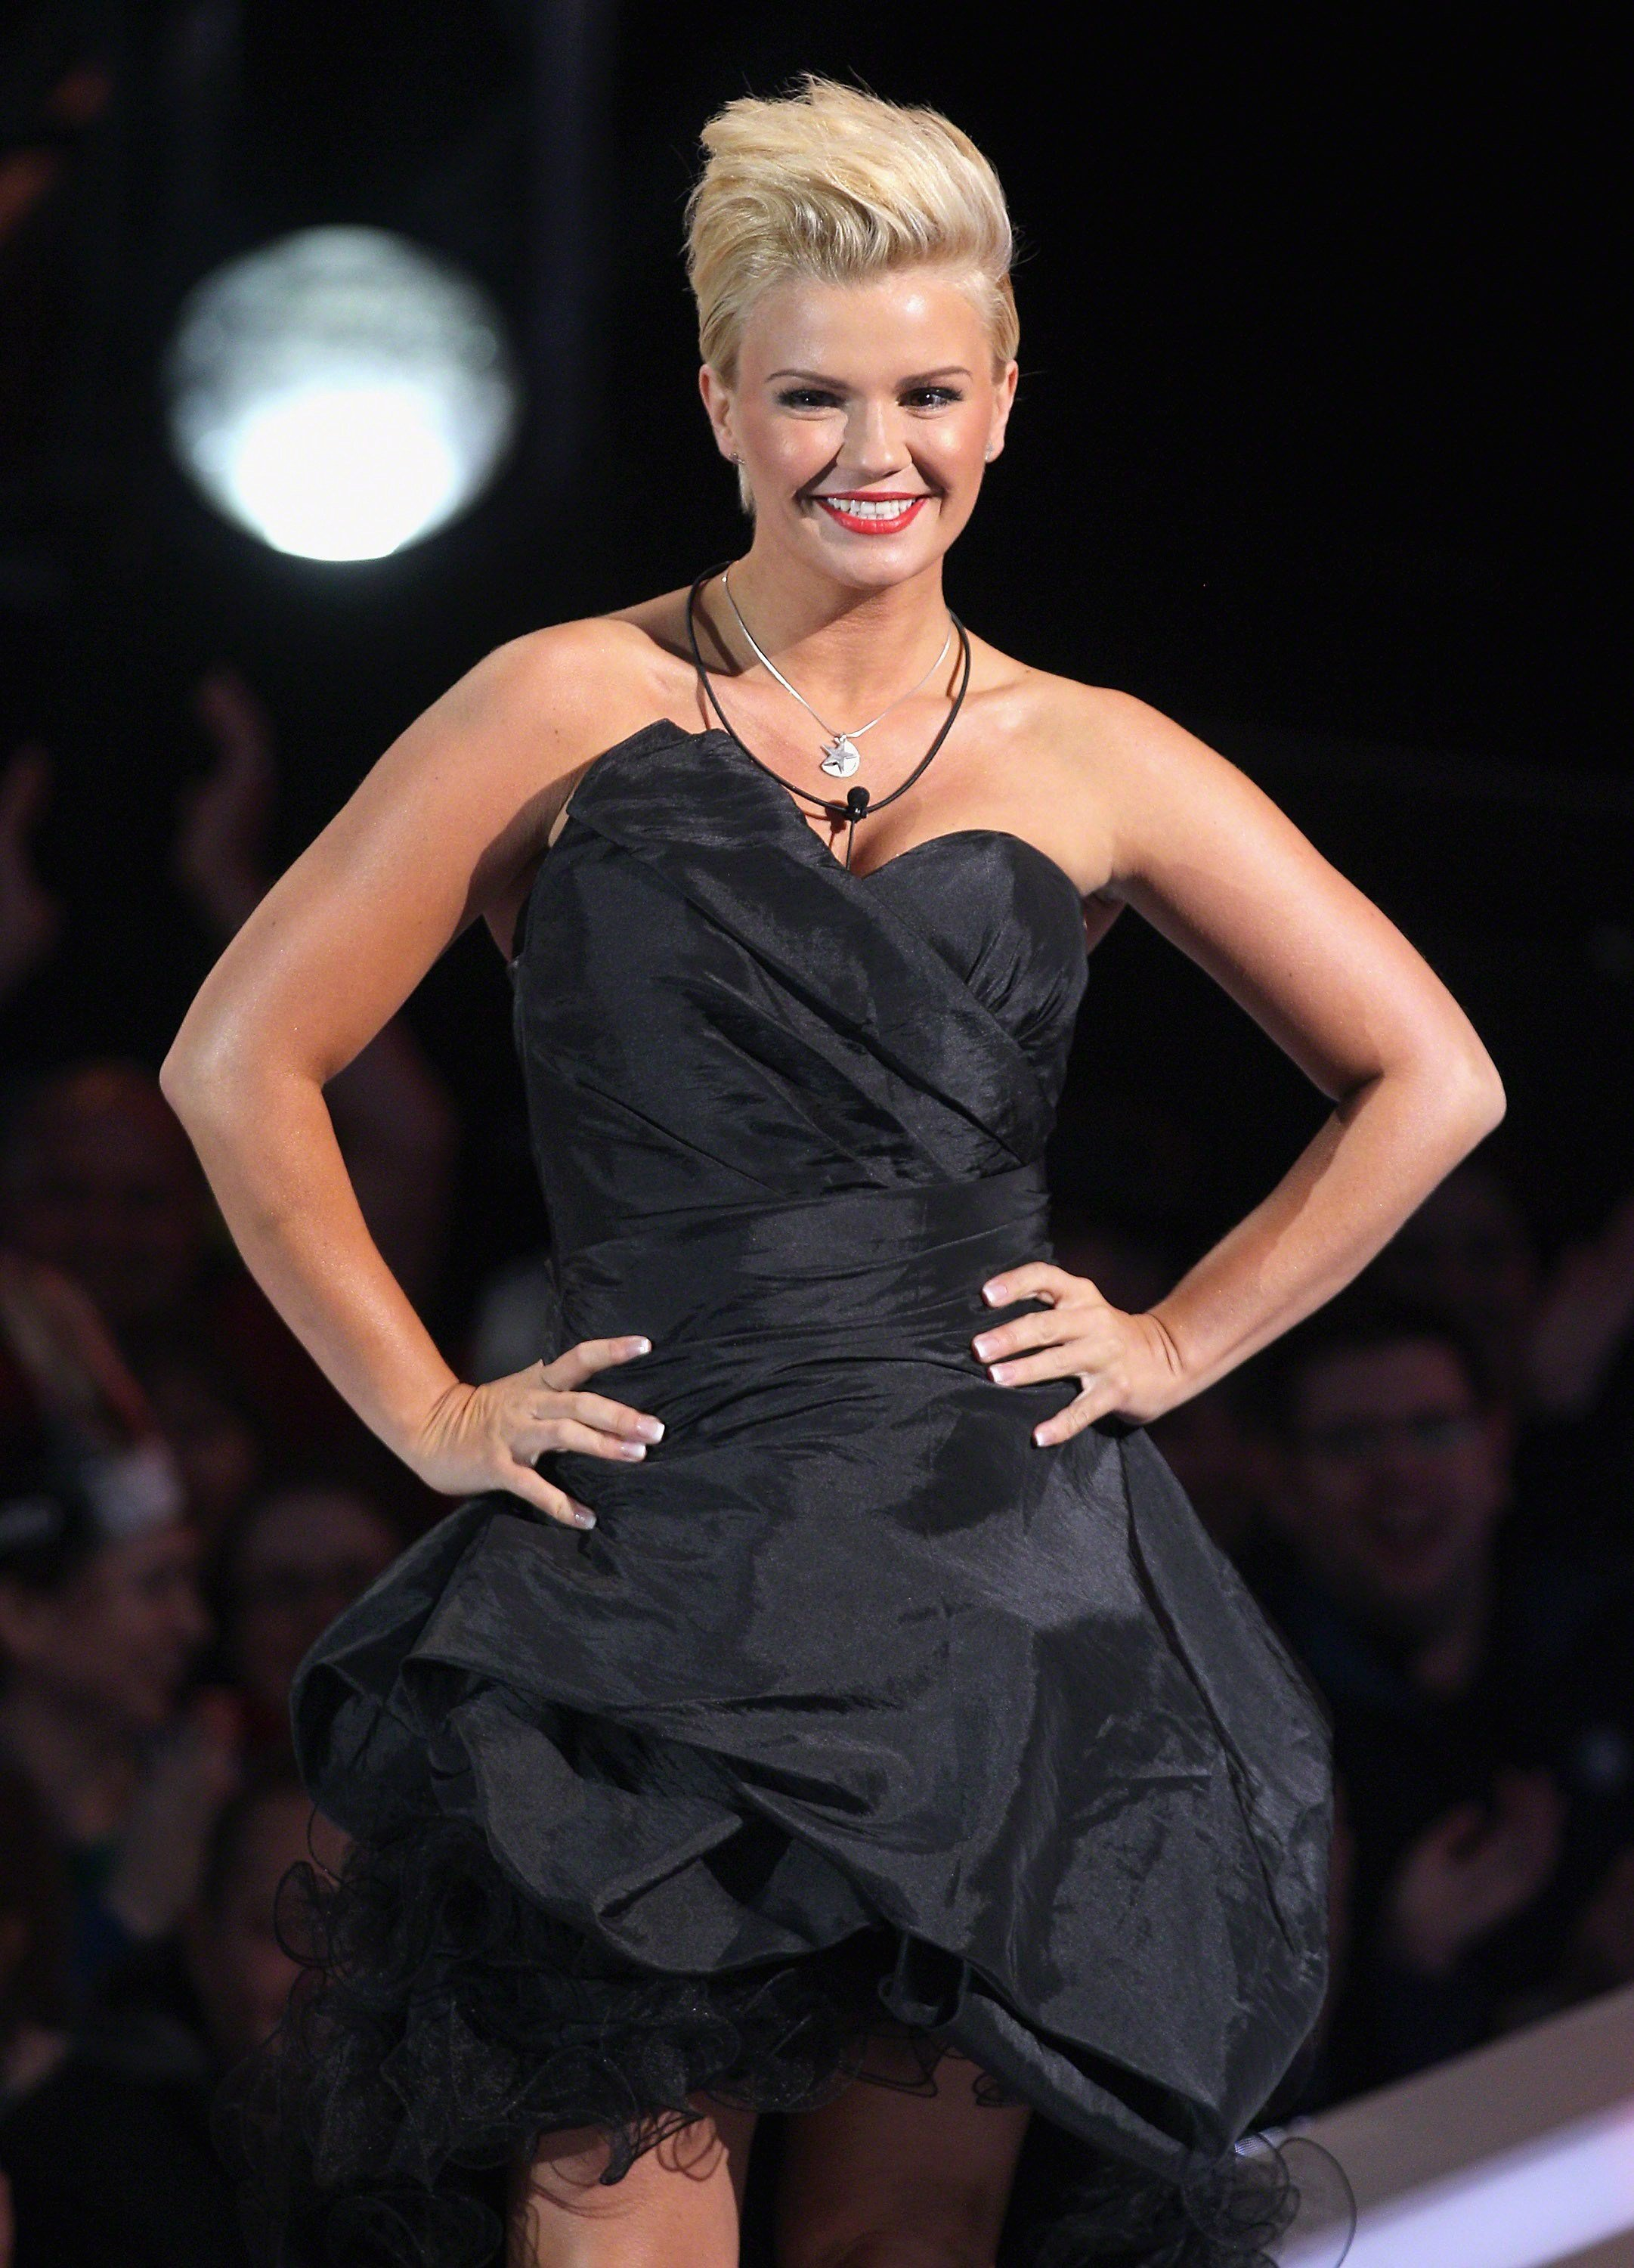 What's Kerry Katona's net worth, what's she said about weight loss and when was she married to Brian McFadden?